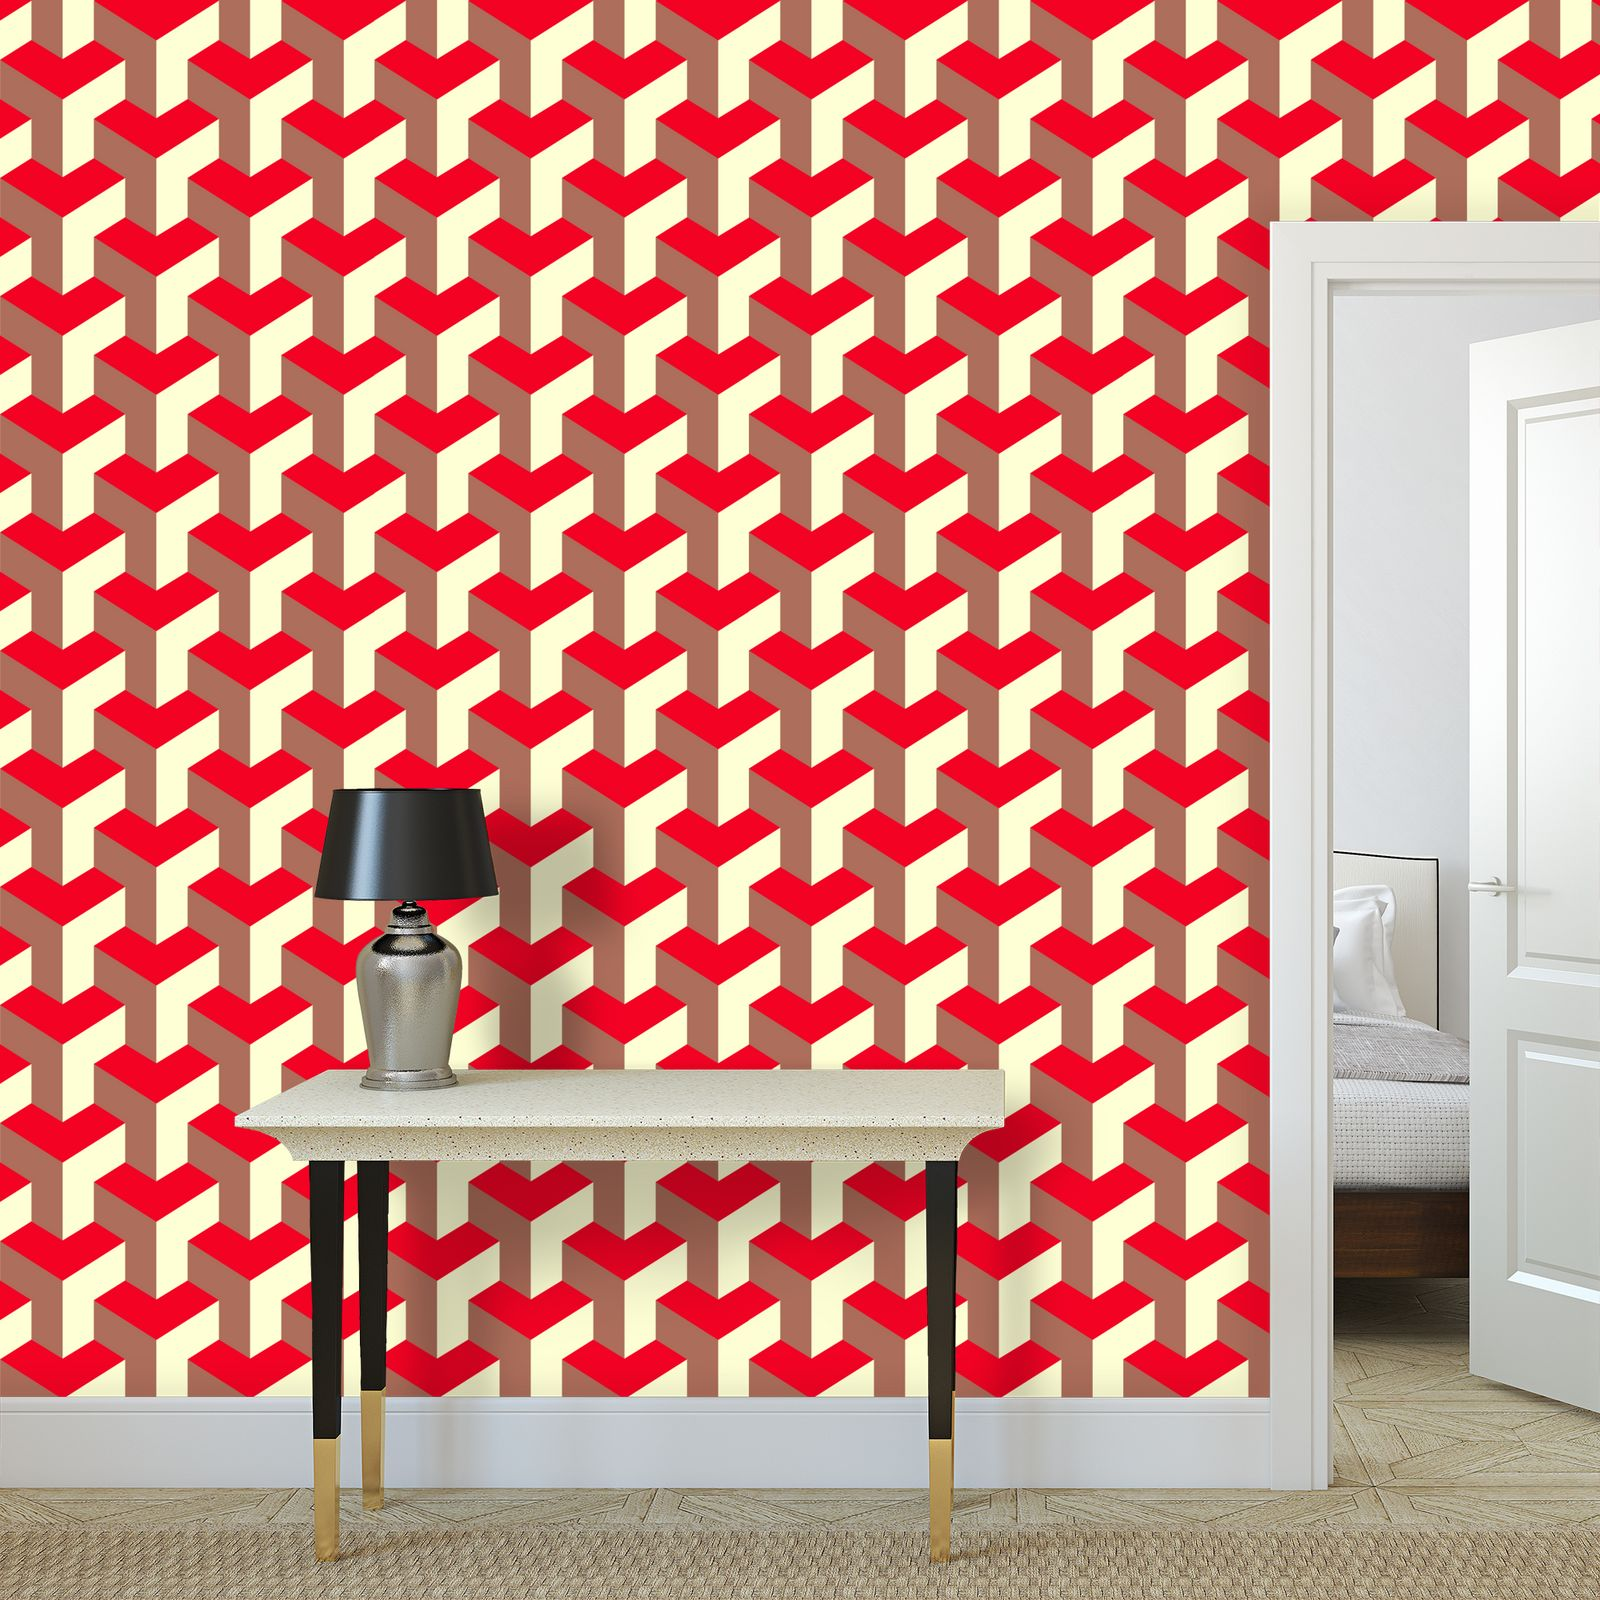 Heart in a cube - Wallpaper Rolls large scale - Abstract geometry, red, contrasting, bright, elegant, statement, futuristic, spectacular, graphic, noble, asymmetrical, effective, stylish gift - design by Tiana Lofd